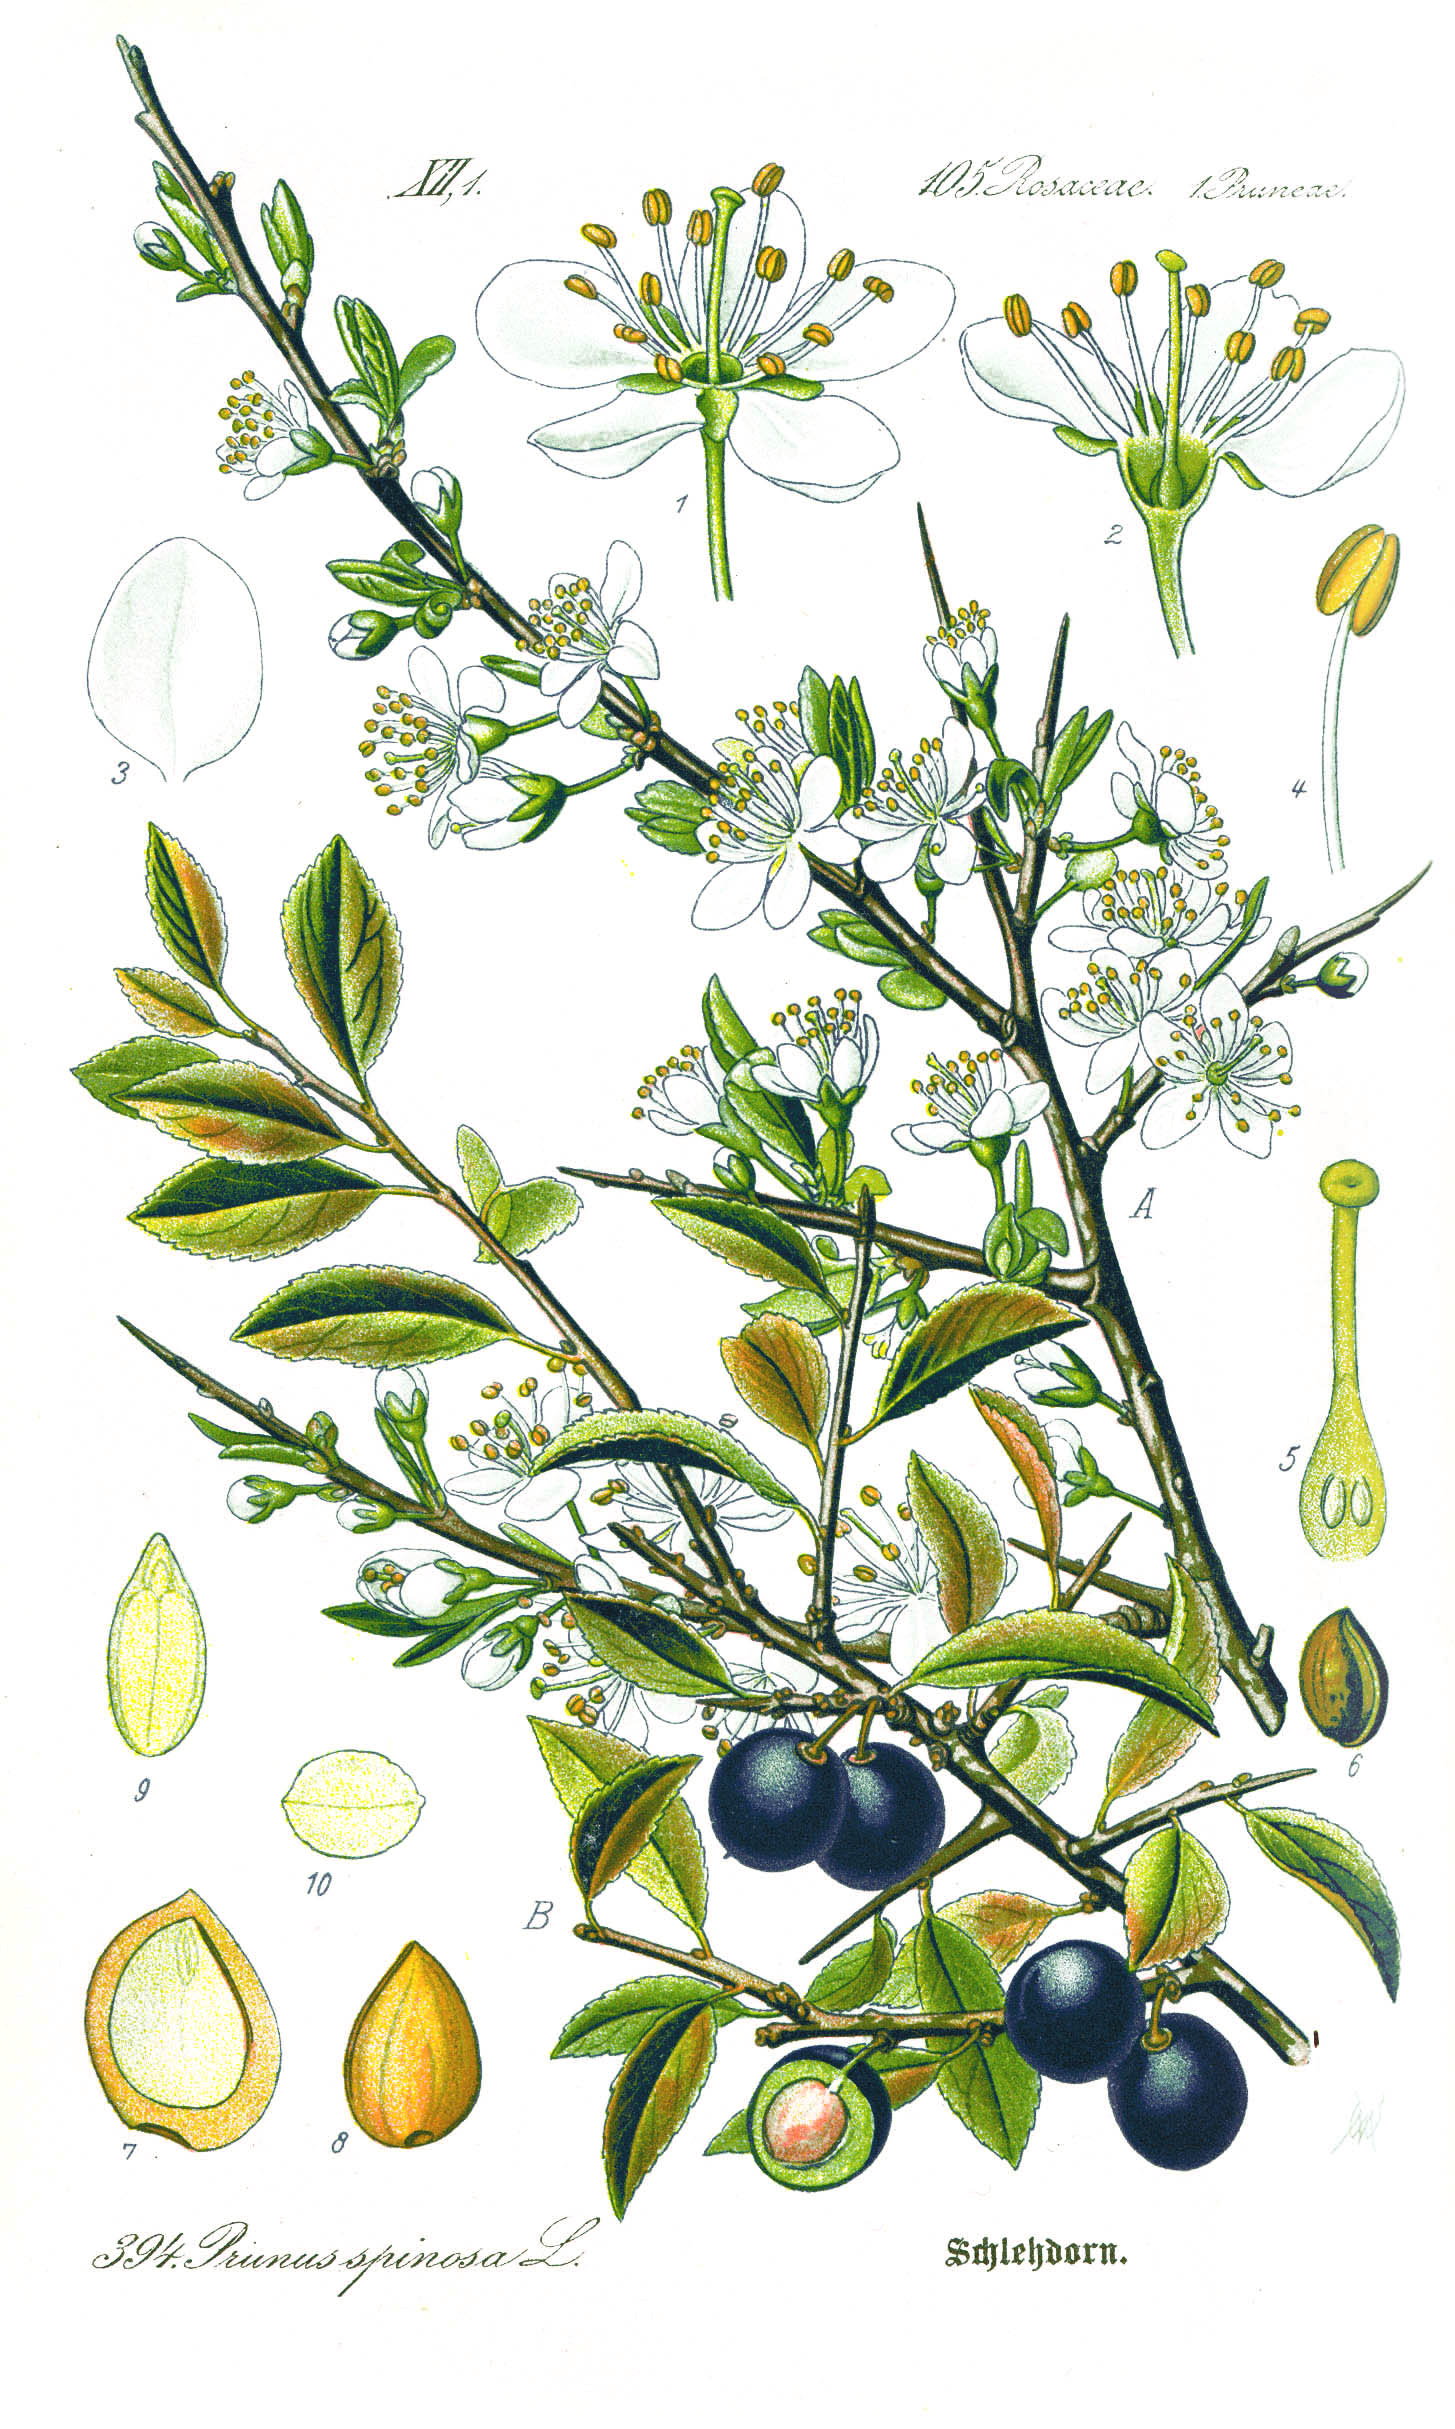 Depiction of Prunus spinosa